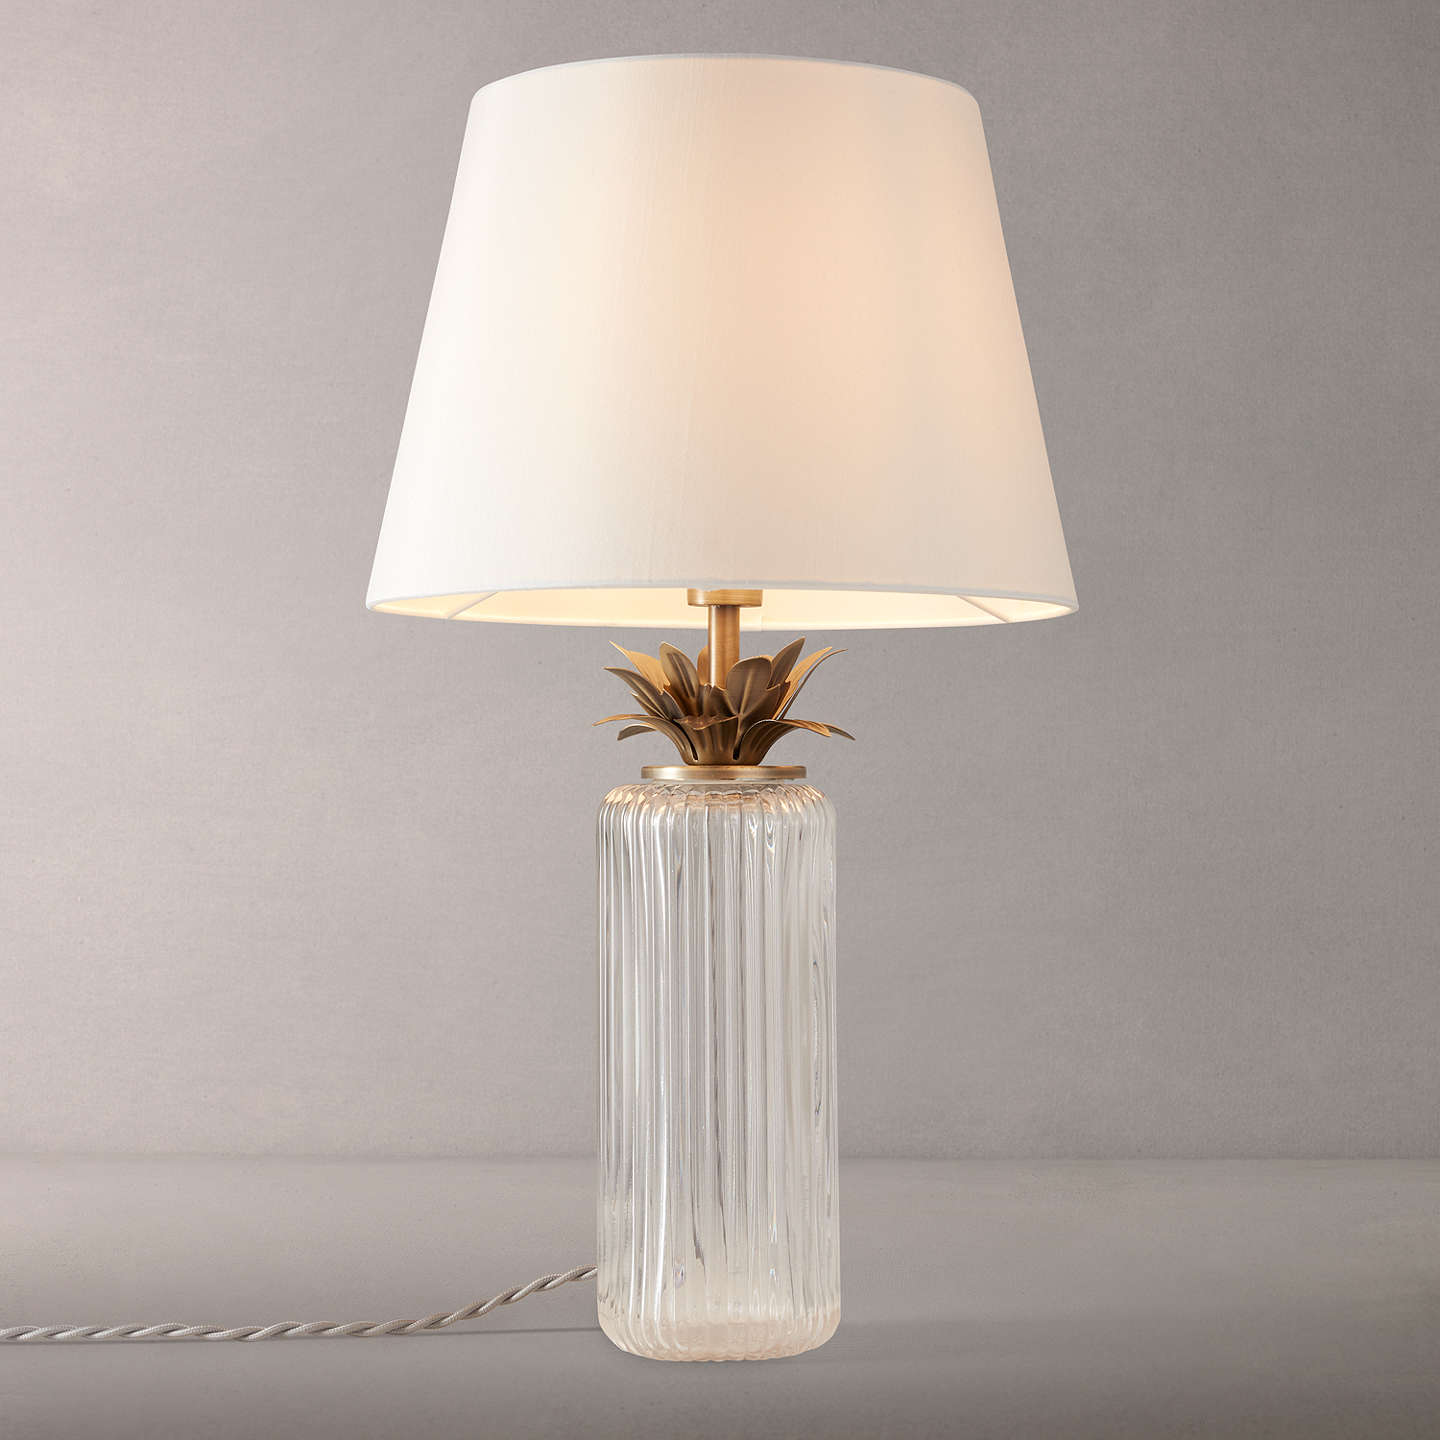 offer john lewis gaynor table lamp at john lewis